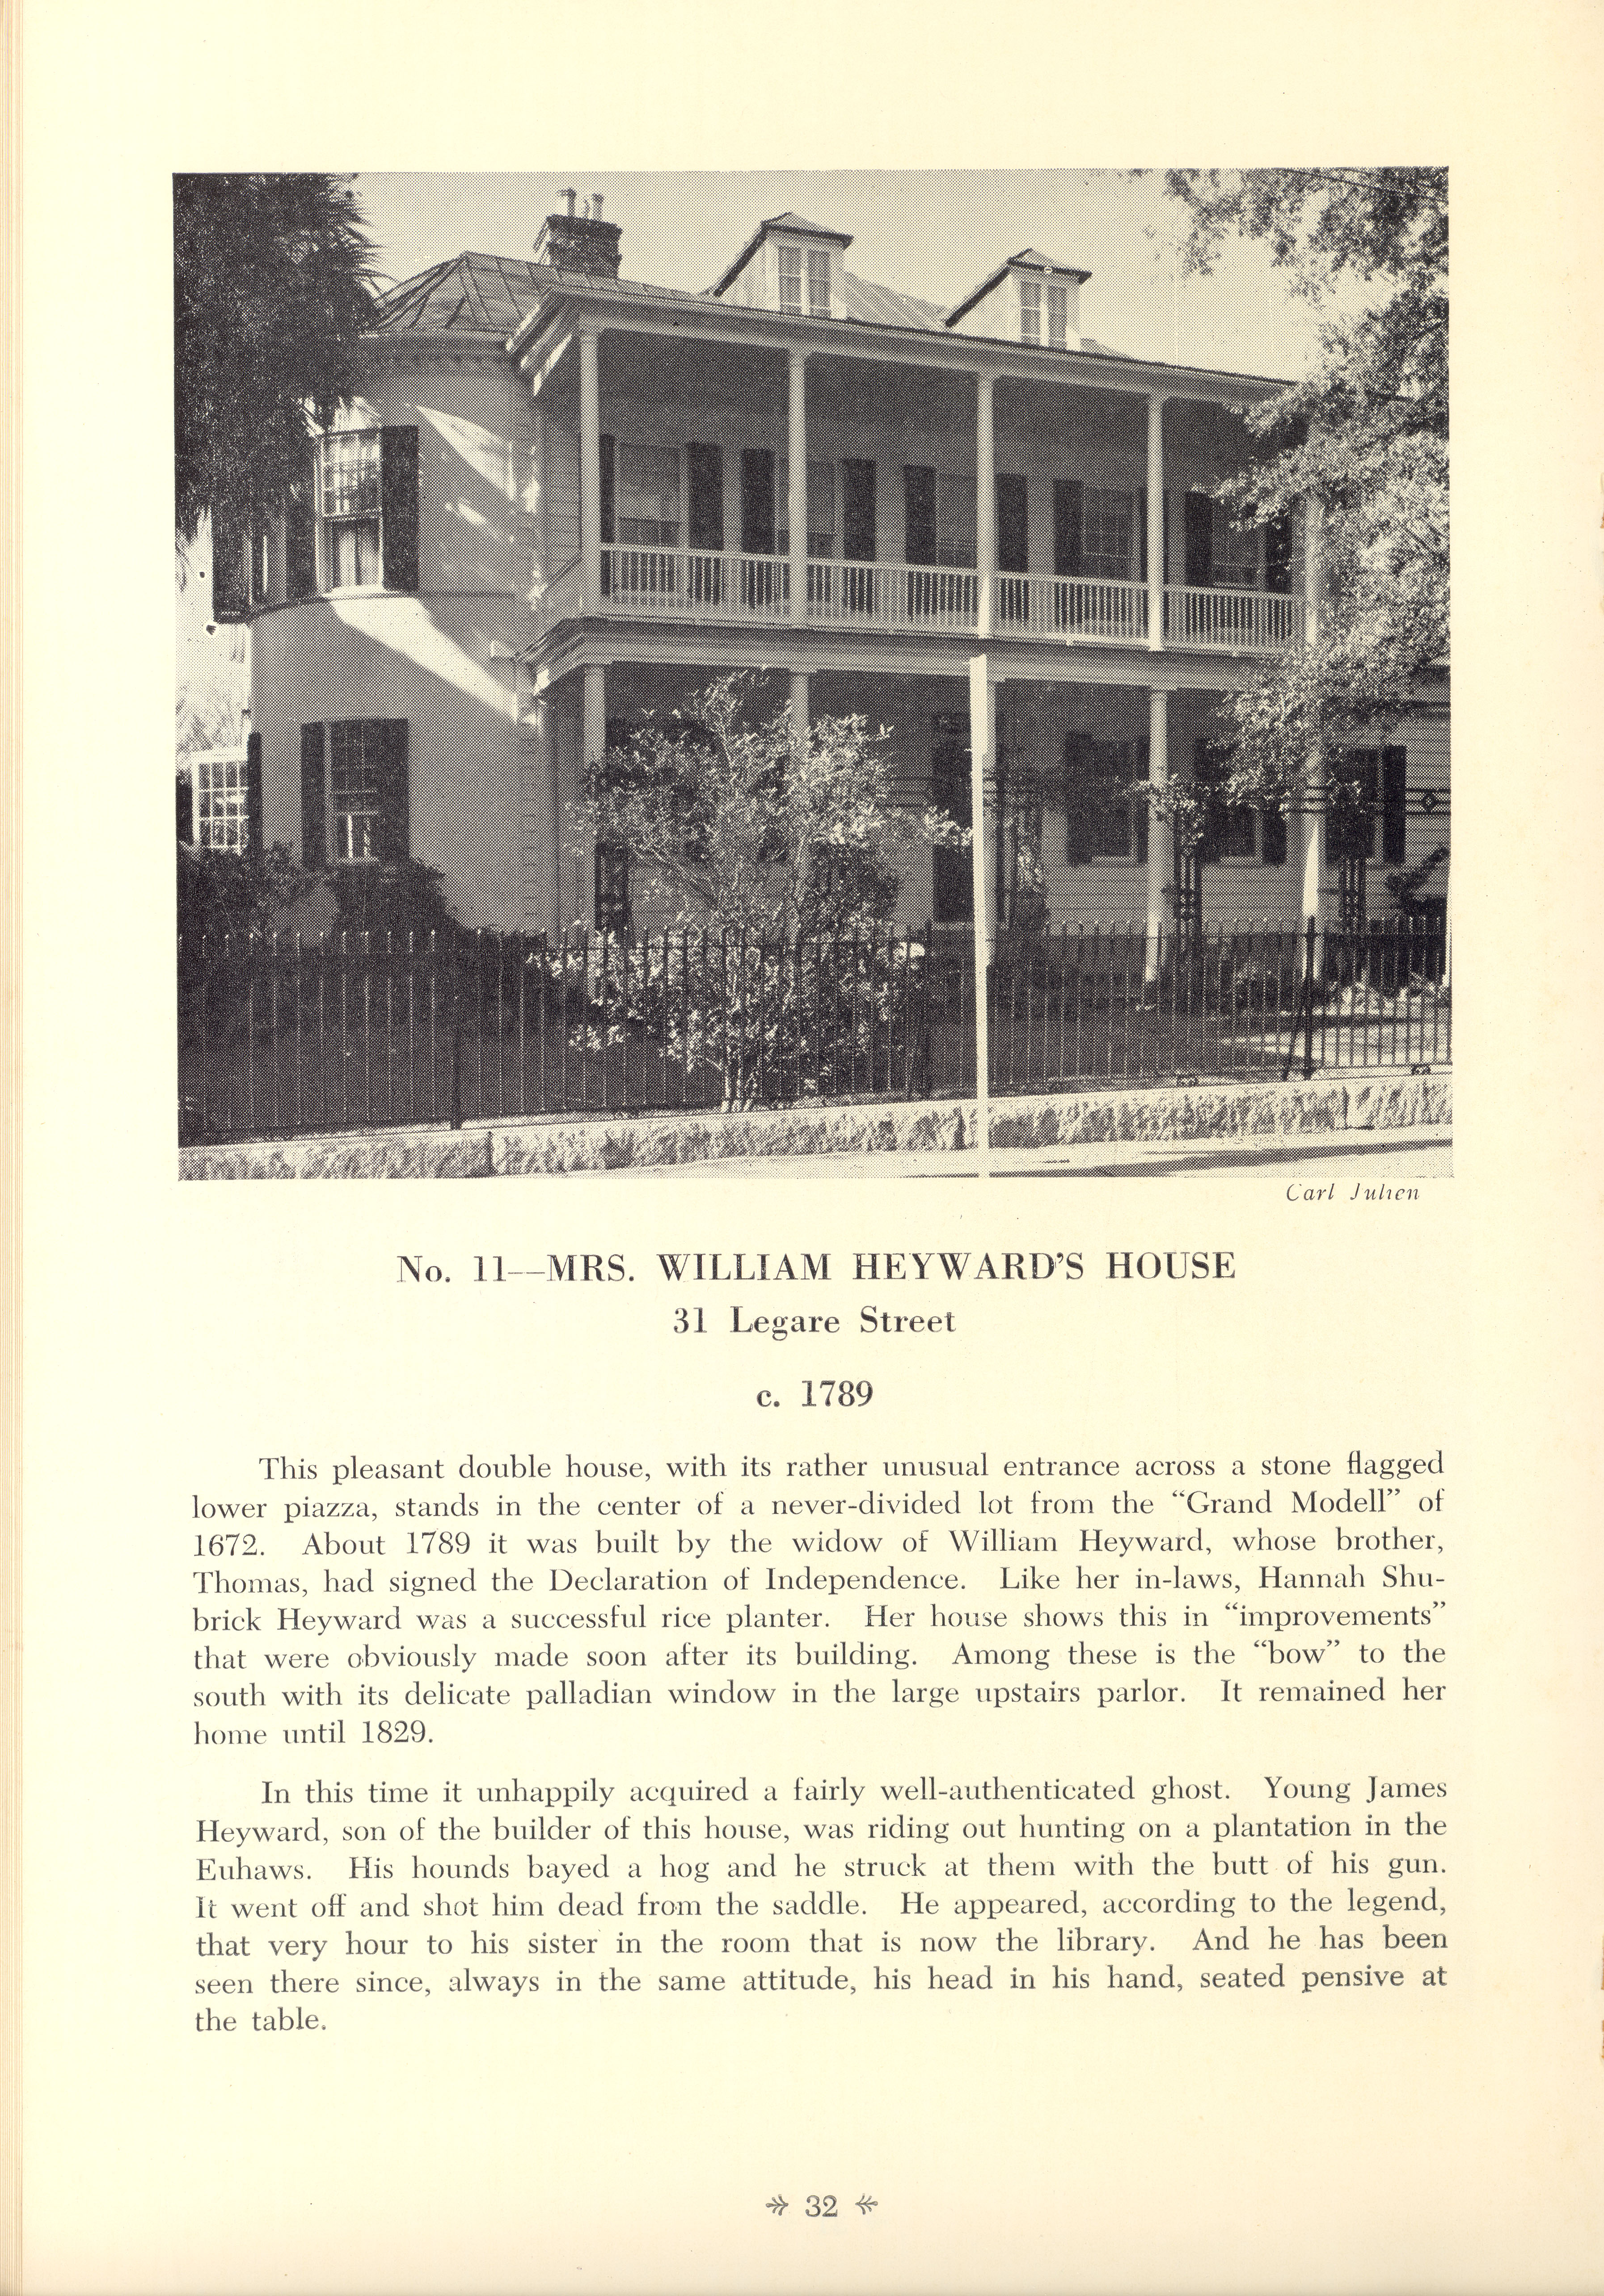 Page 32  No. 11 - Mrs. William Heyward's House, 31 Legare Street, c. 1789